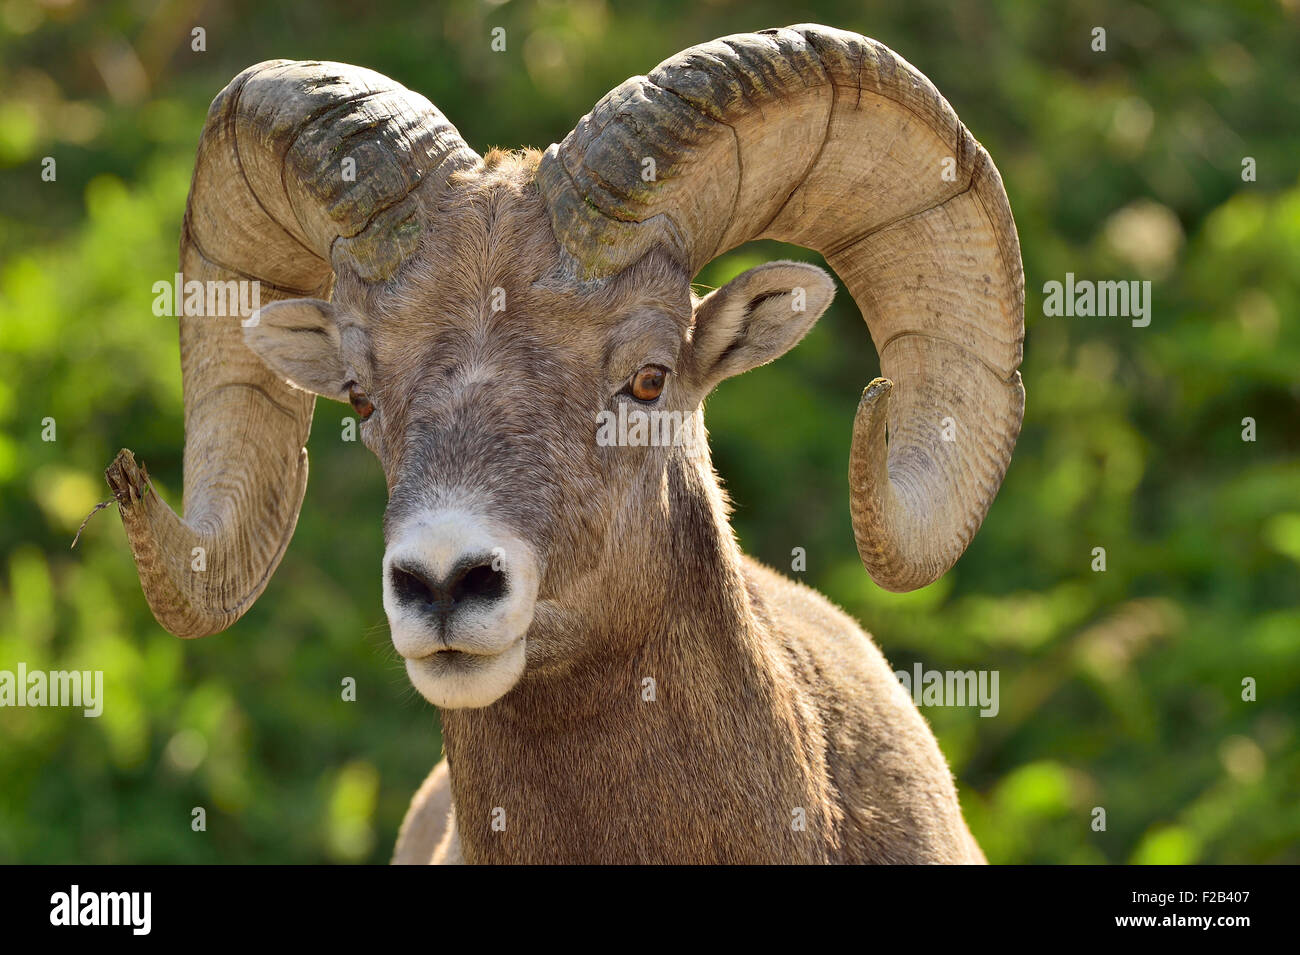 A portrait image of a rocky mountain bighorn sheep  Orvis canadensis; making eye contact - Stock Image